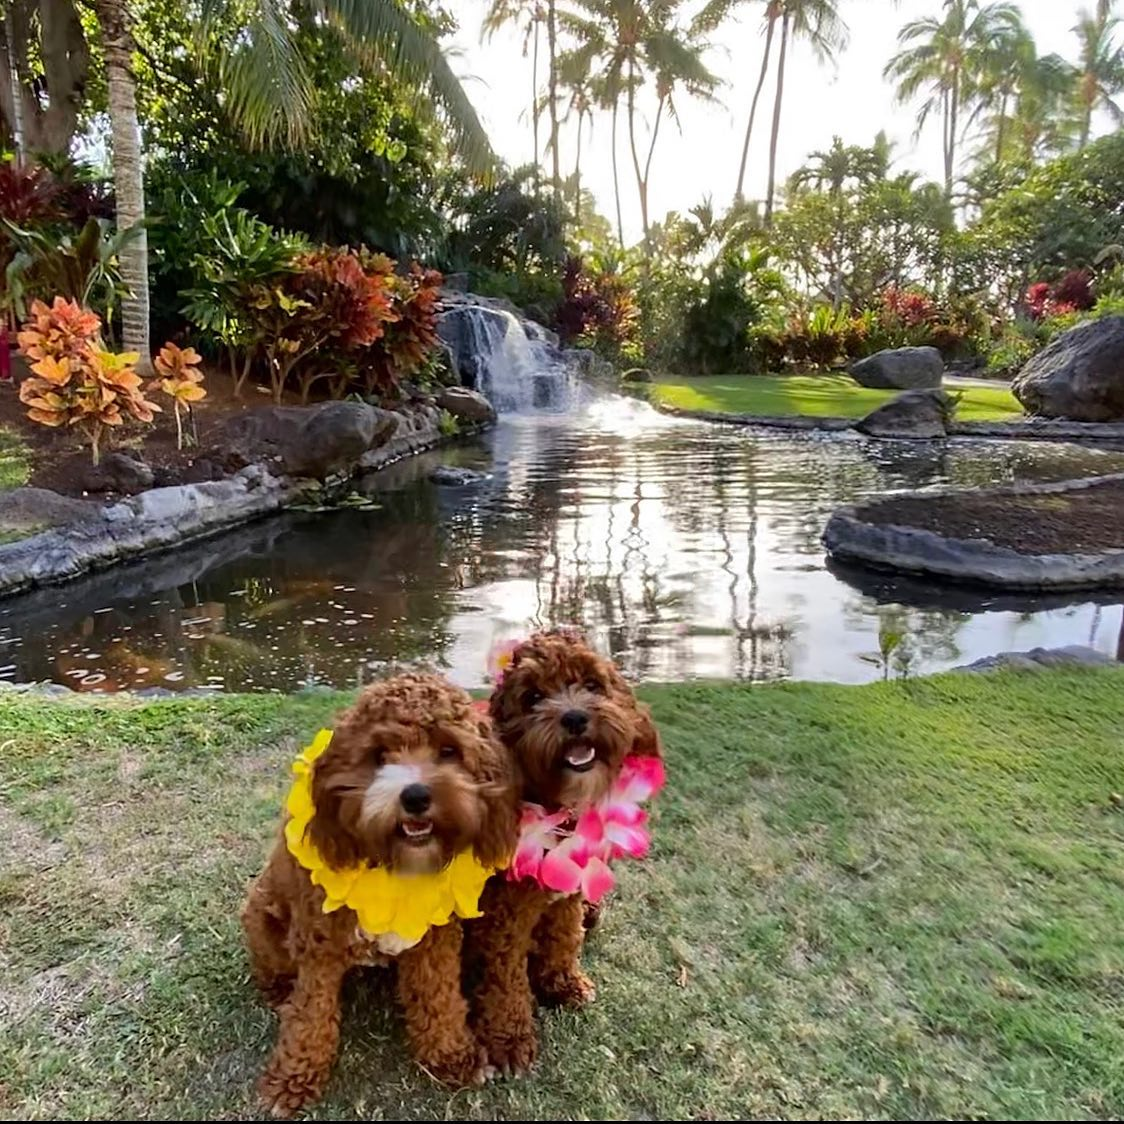 We ❤️ our guests' furry friends! #NationalDogDay 📸: keiks.and.koko  #FairmontOrchid #Hawaii #OnlyAtTheOrchid #HawaiiIsland #Fairmont #FairmontHotels #FairmontMoments https://t.co/pj58RzxCp7